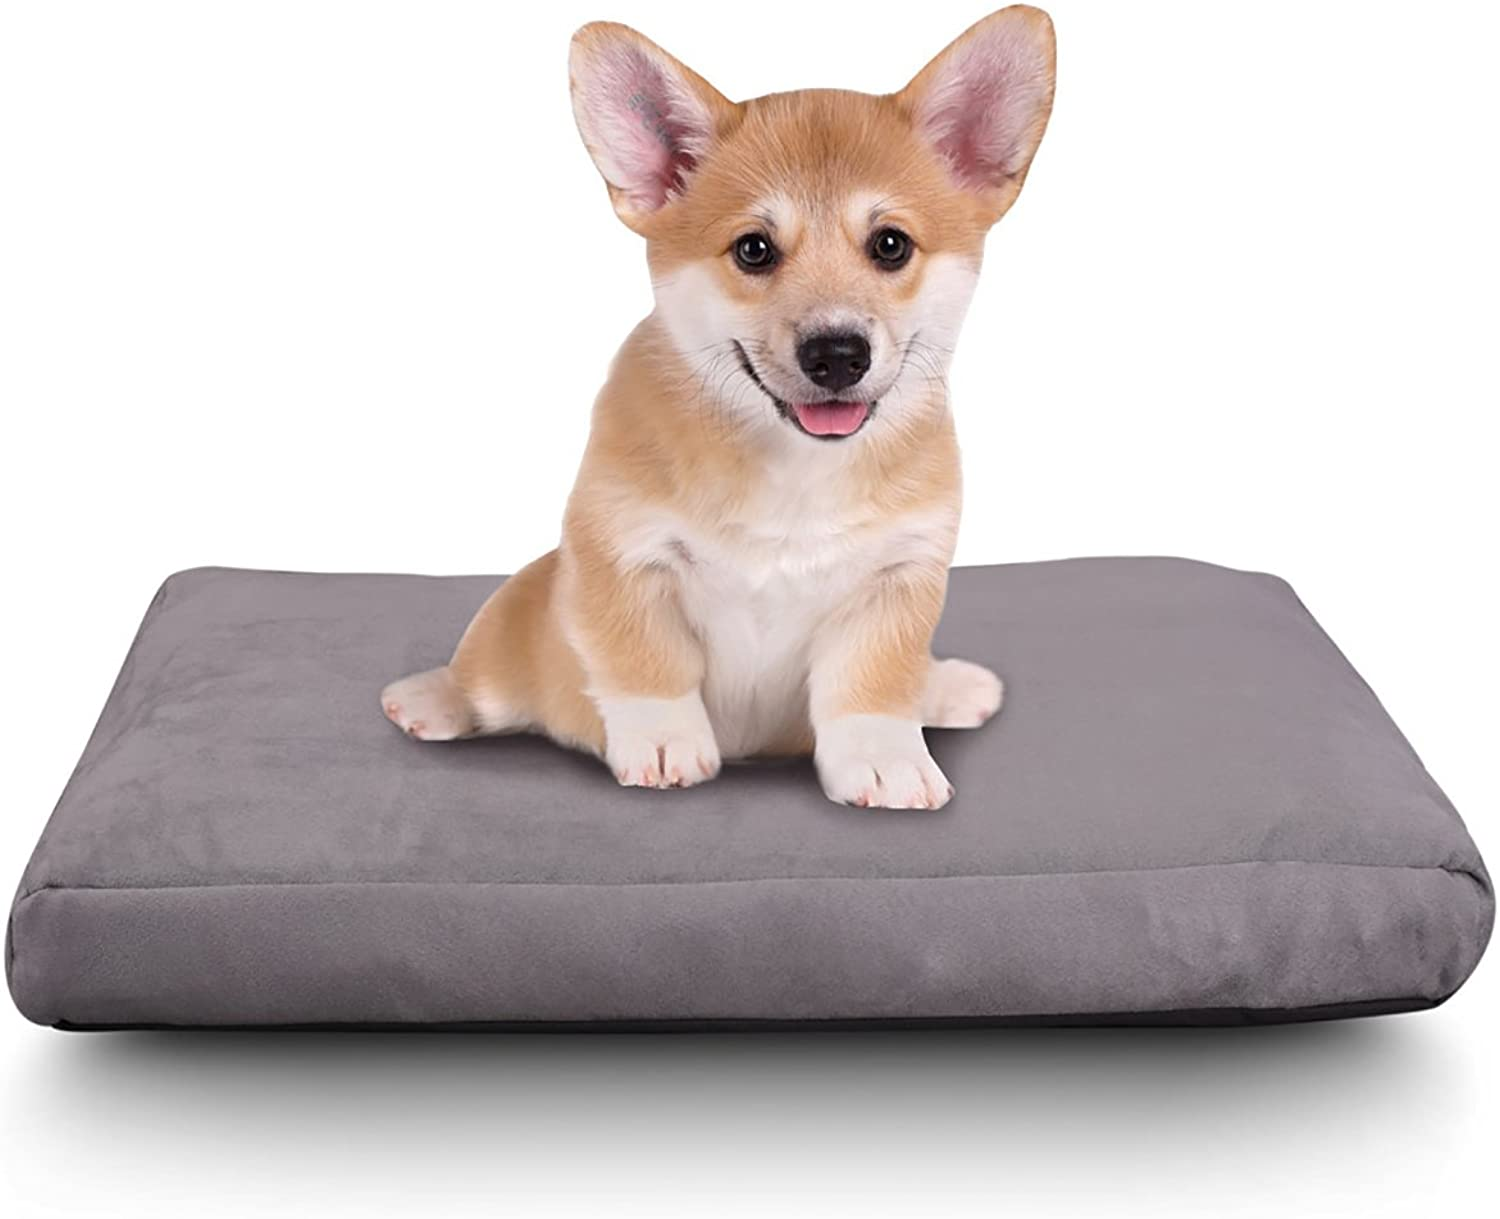 Comfort & Relax Shredded Memory Foam Waterproof Pet Bed for Small Cats Dogs